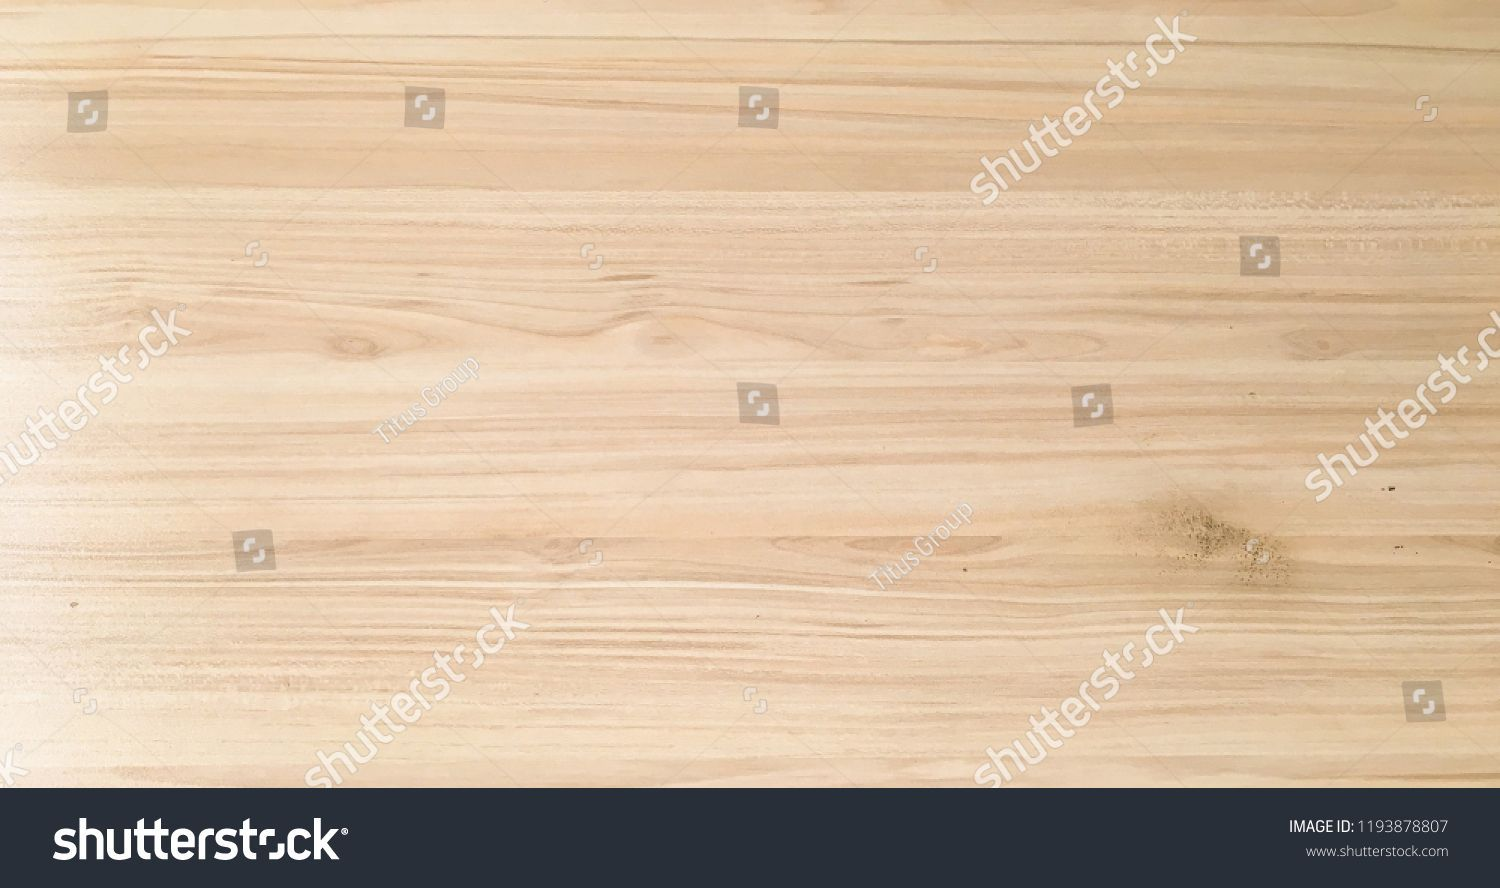 Brown wood texture. Abstract wood texture background. wood#Brown#texture#background #woodtexturebackground Brown wood texture. Abstract wood texture background. wood#Brown#texture#background #woodtexturebackground